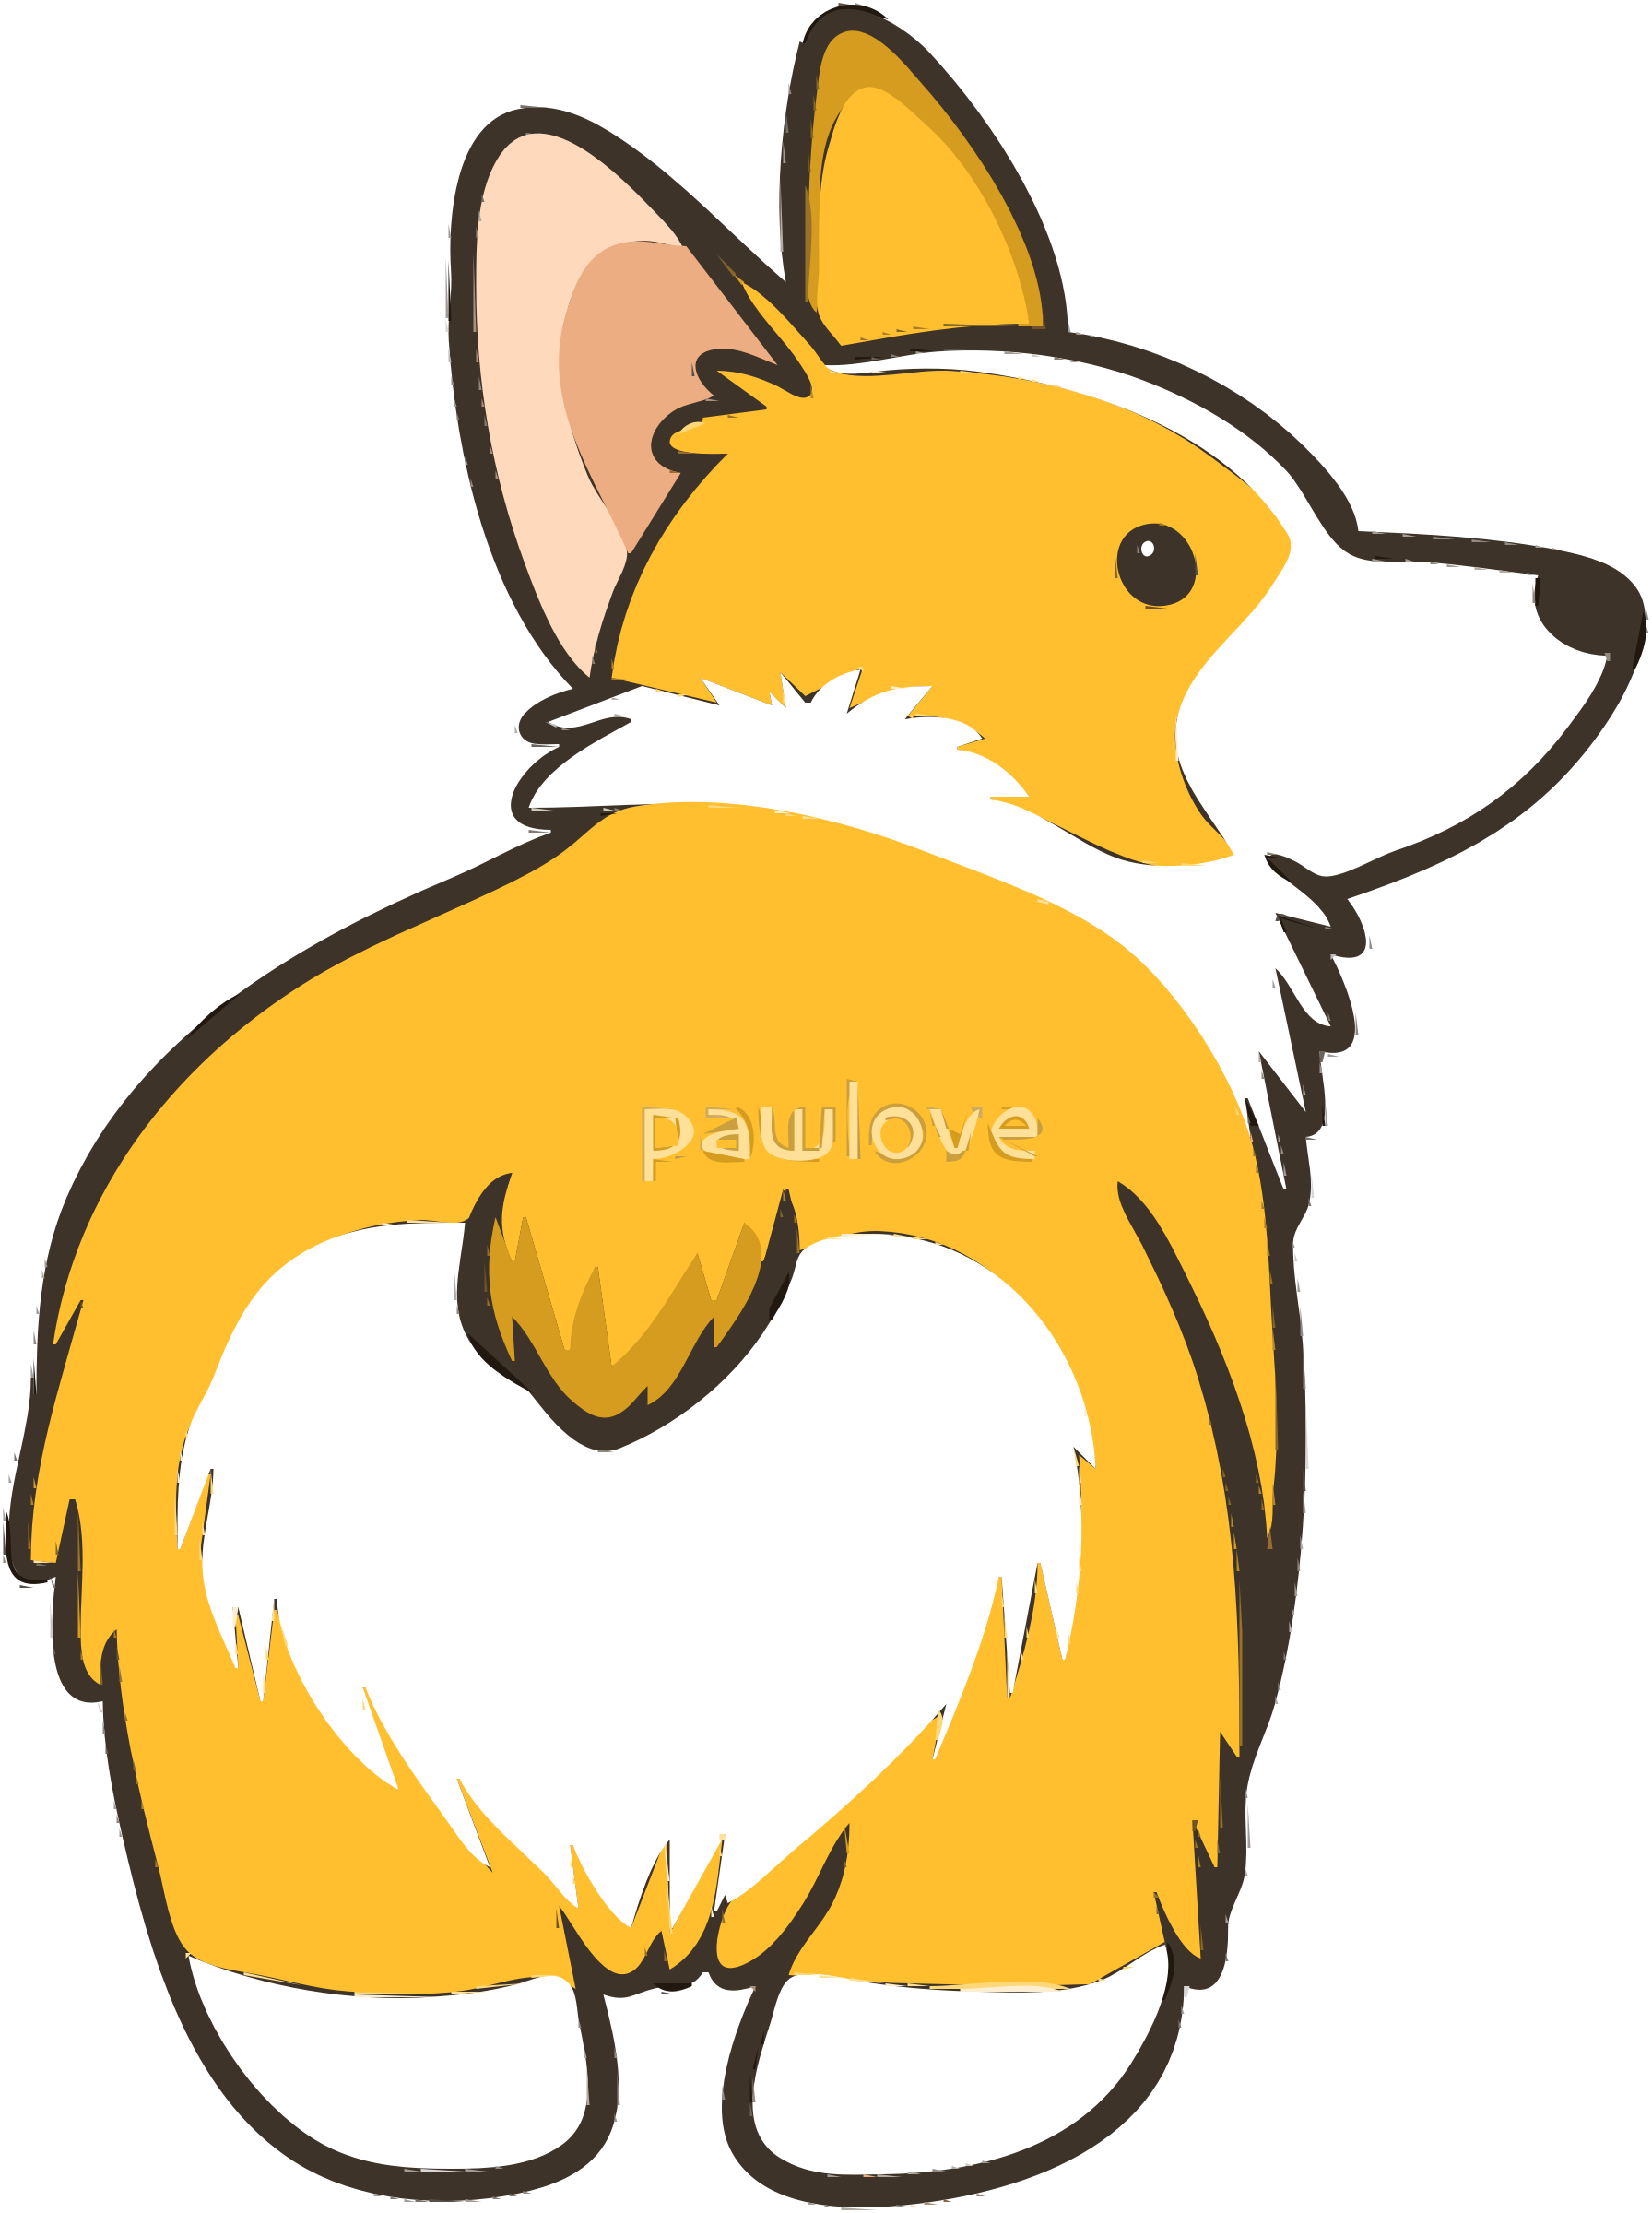 corgi vector clipart image free stock photo public domain photo